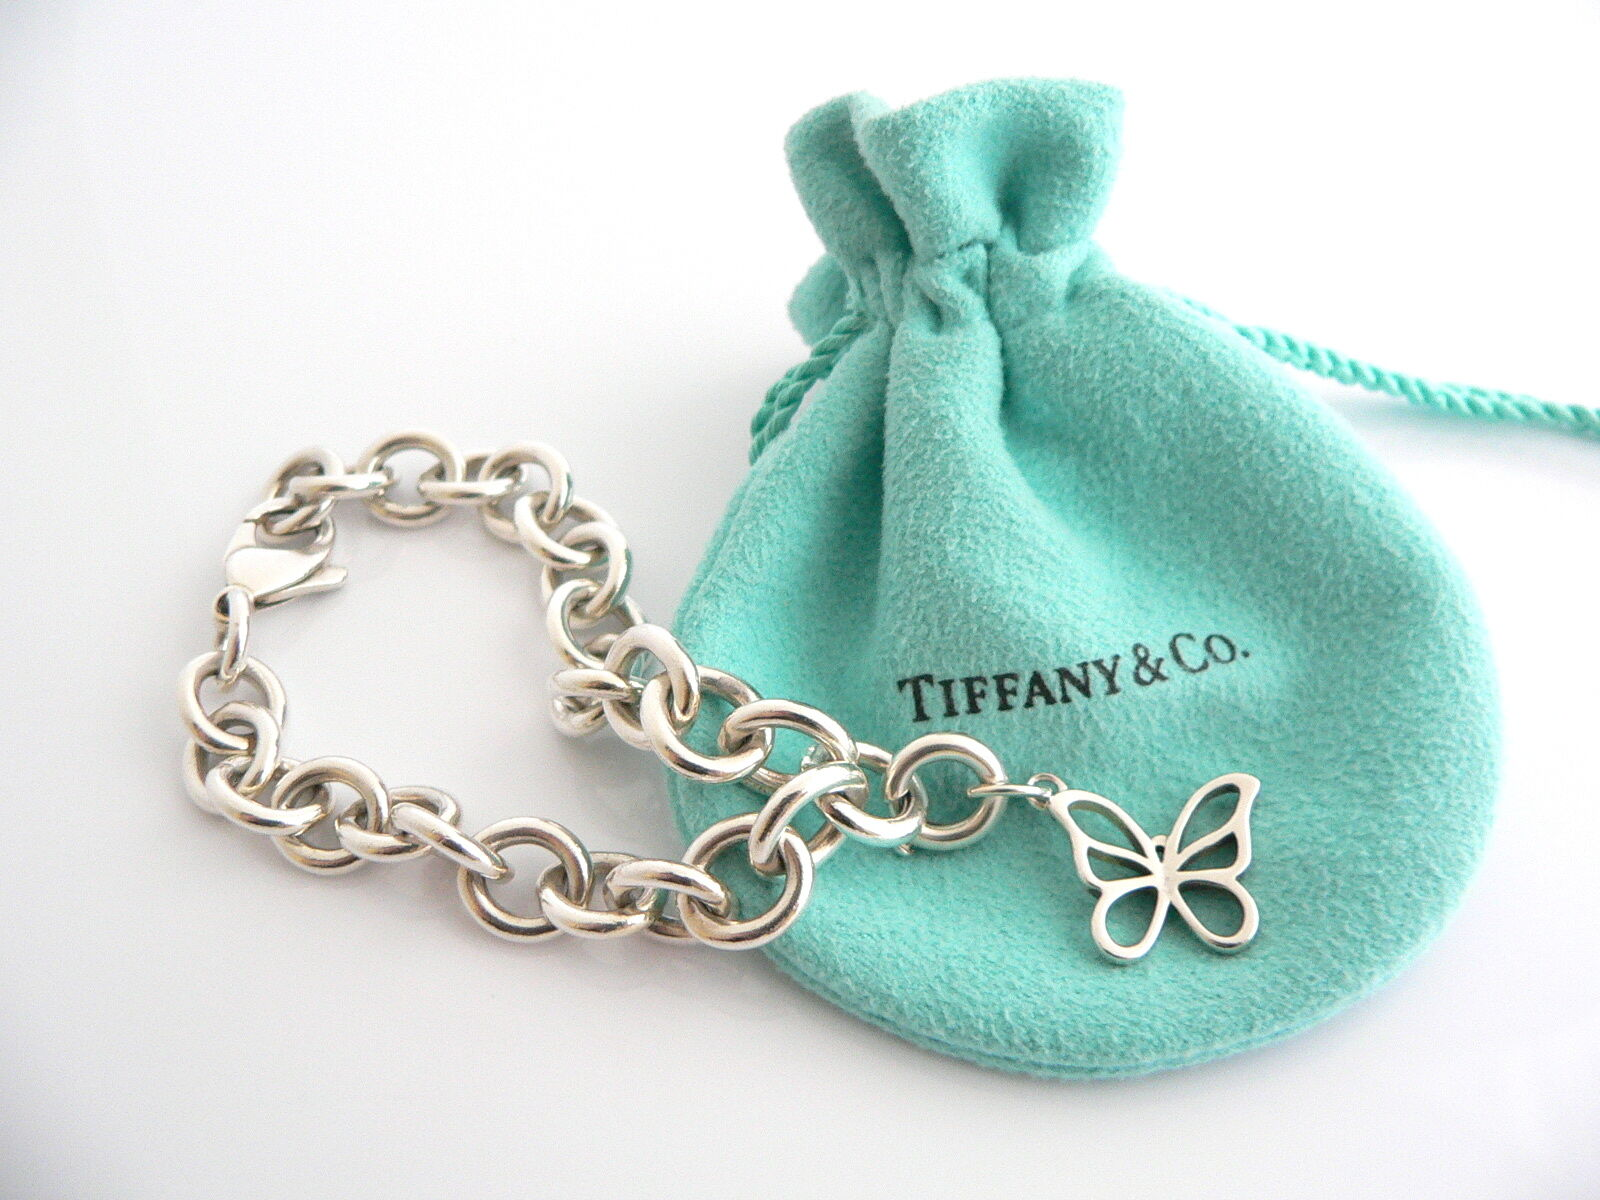 Tiffany & Co Silver Nature Butterfly Bracelet Bangle Charm Clasp Gift Pouch Love